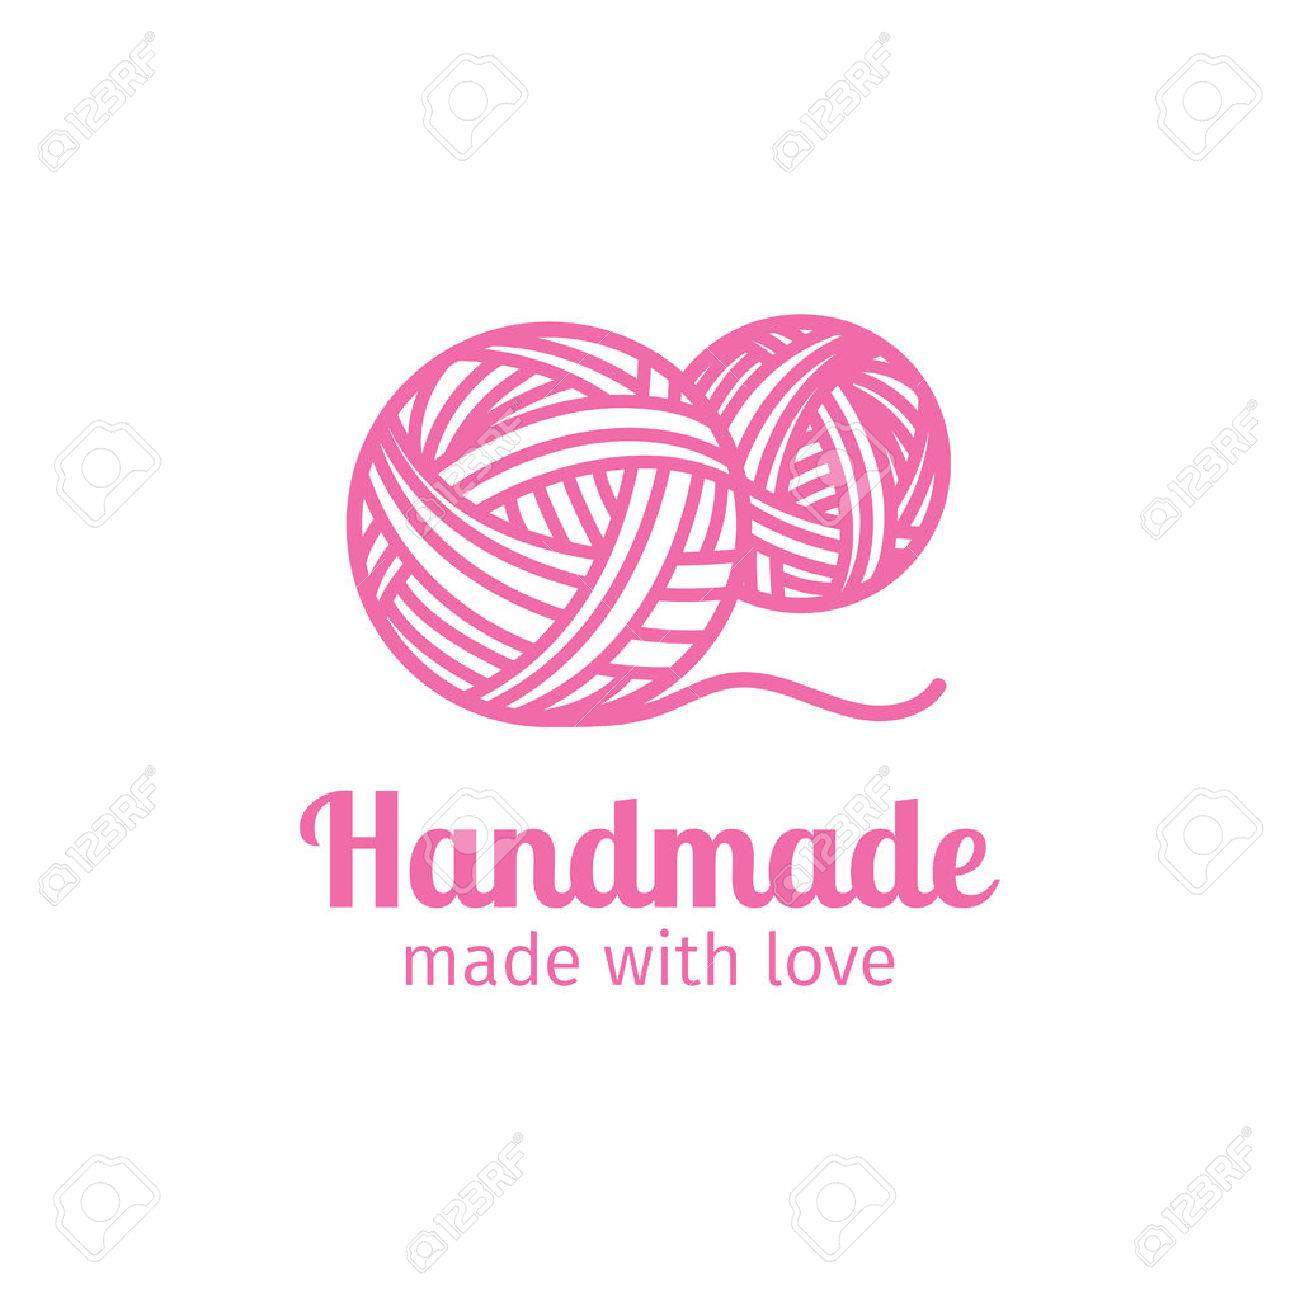 Handmade Thin Line Icon Made With Love Vector Illustration Stock